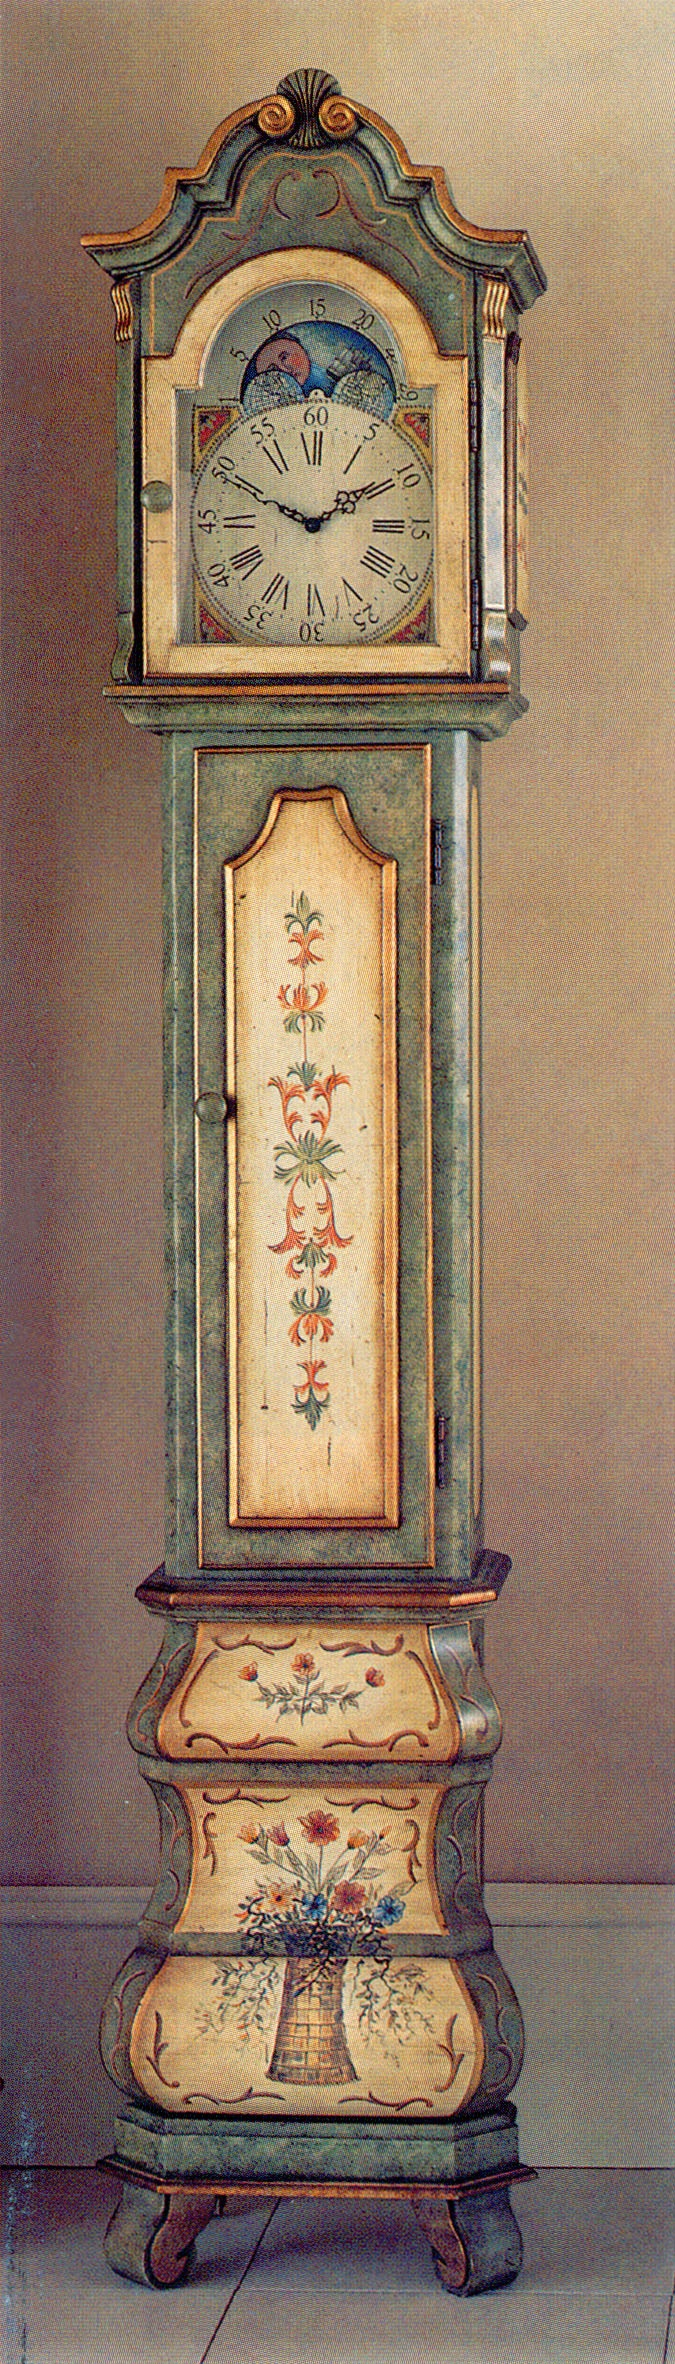 Hand-painted grandfather clock from Horchows, with Florentine motifs